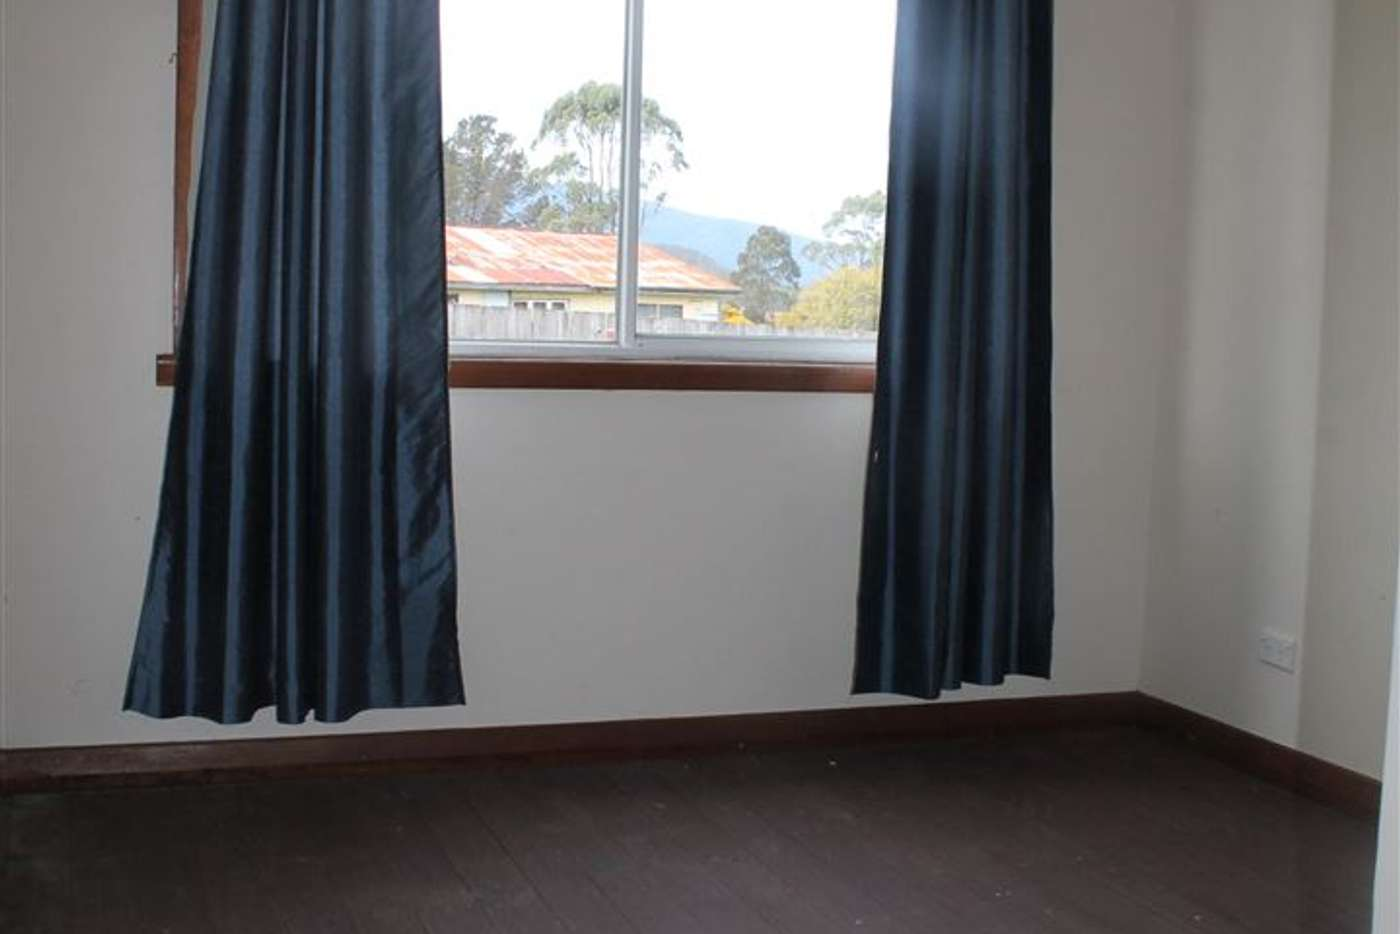 Sixth view of Homely unit listing, 8 Austral St, Zeehan TAS 7469